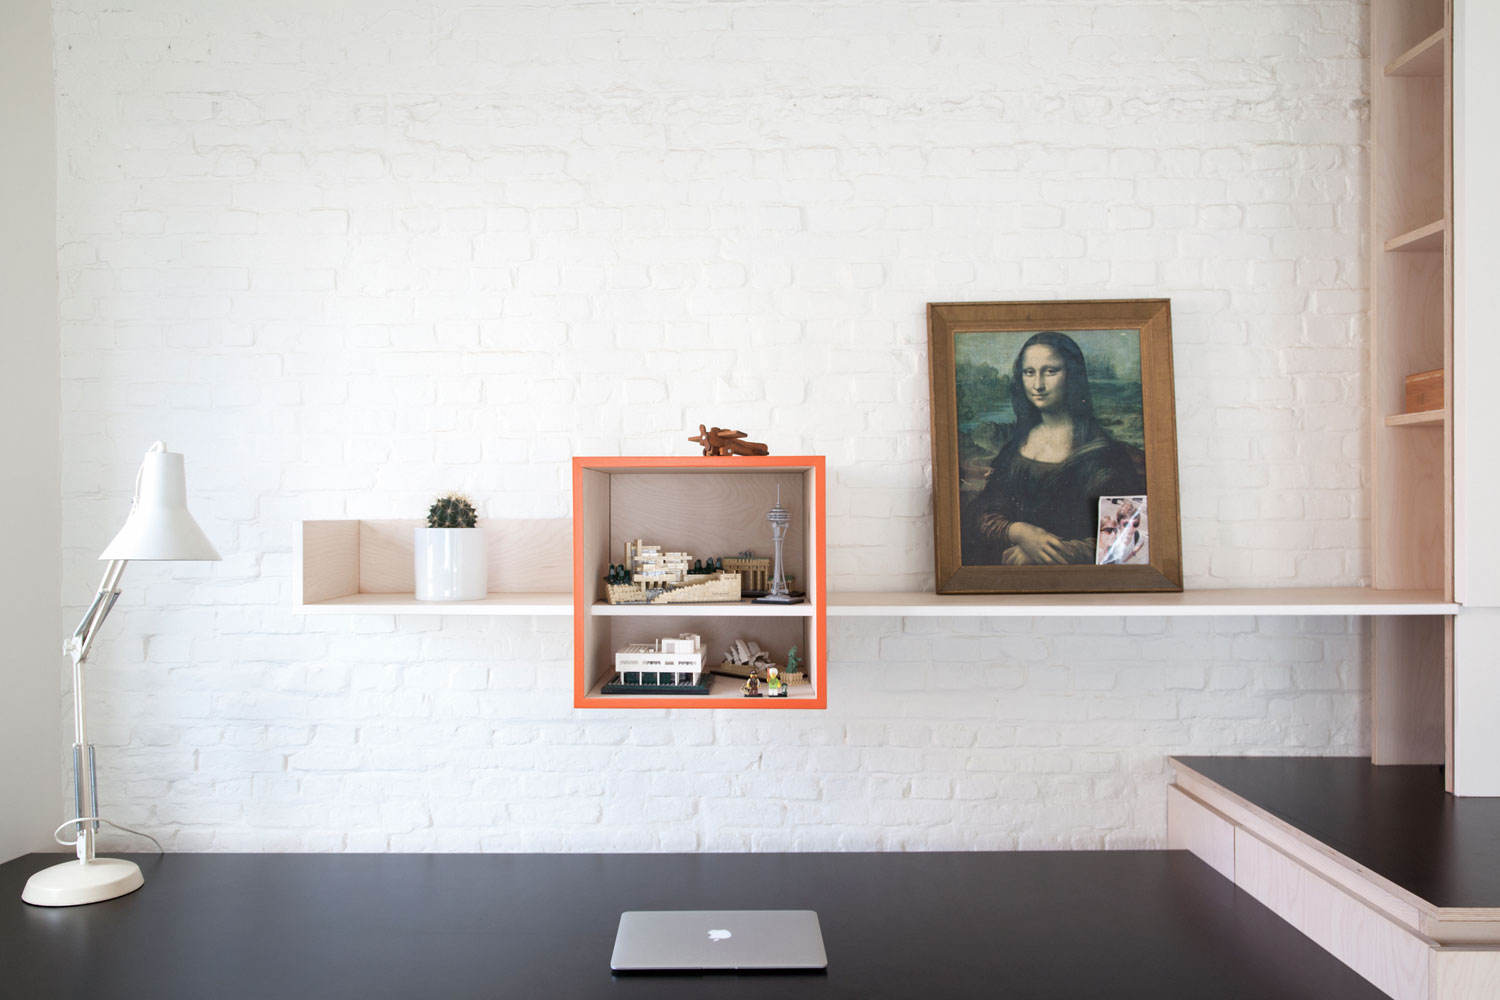 colorful kitchen by belgian designer dries otten 6 Colorful Kitchen By Belgian Designer Dries Otten